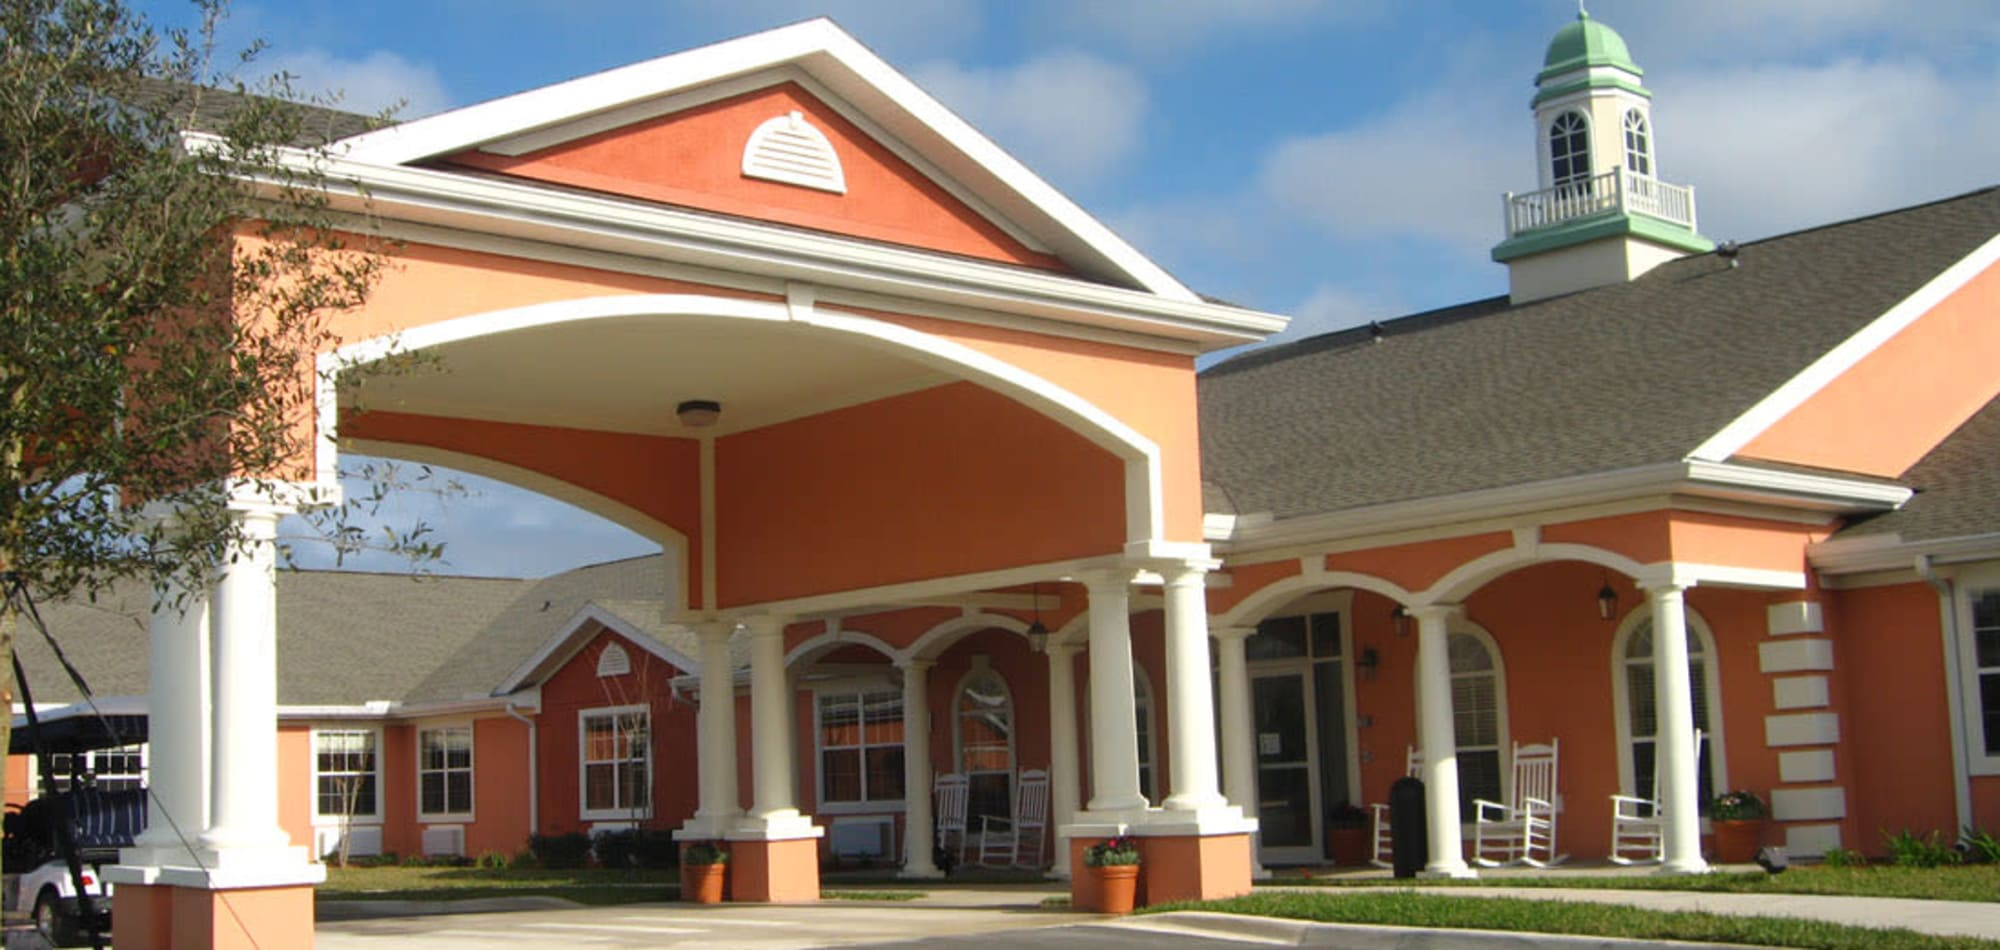 Grand Villa of Palm Coast offers senior living in Palm Coast, Florida.